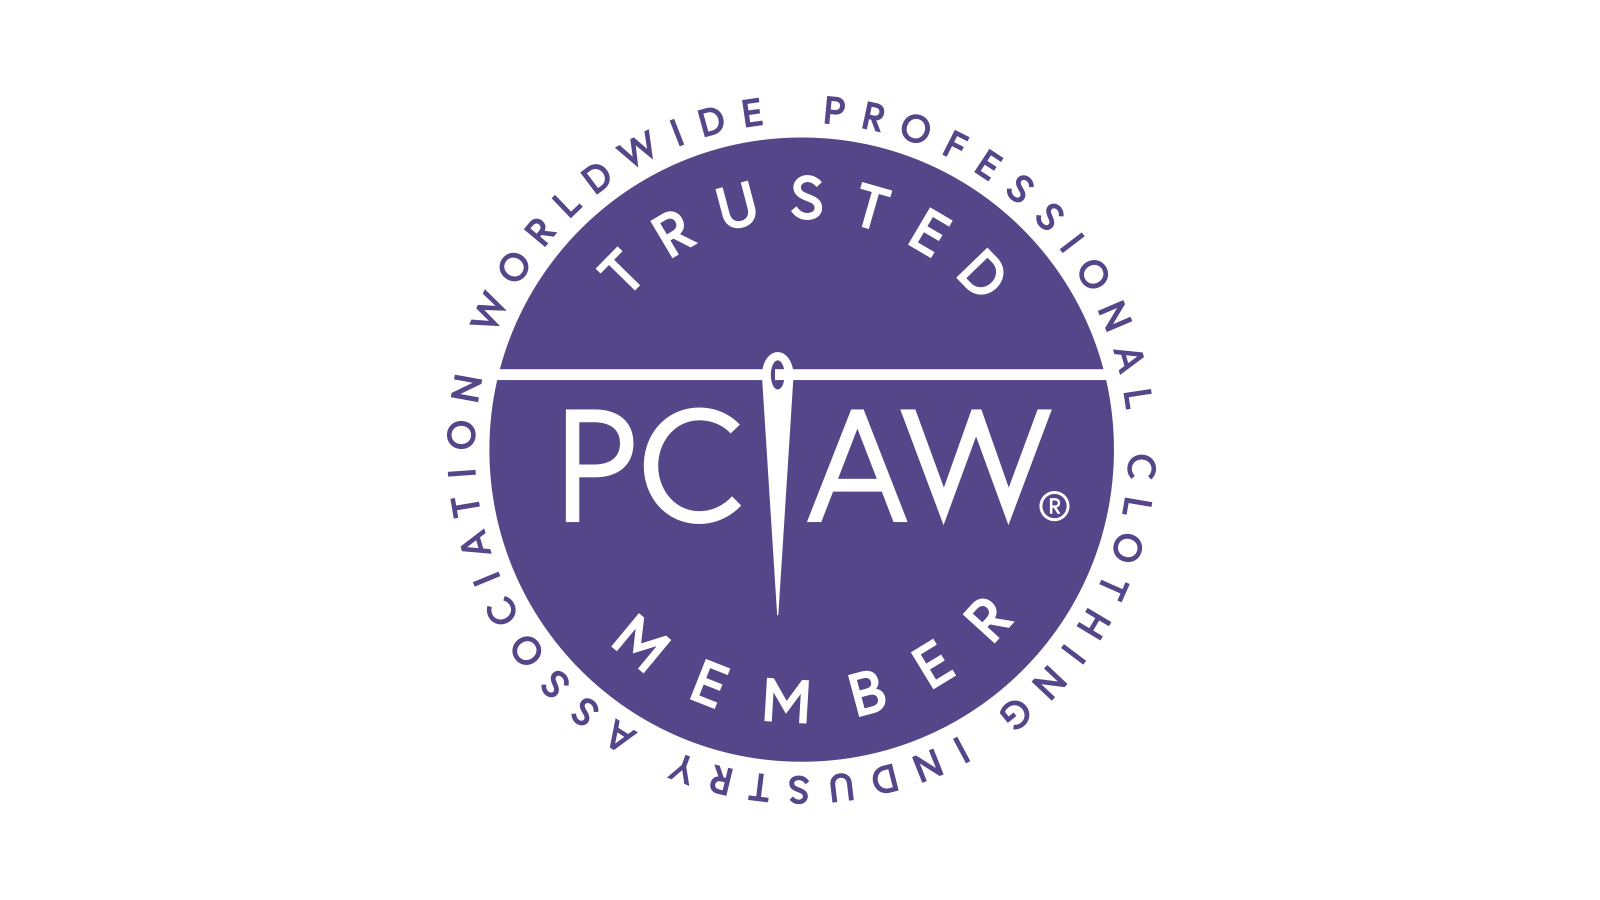 PCIAW Brexit Northern Ireland